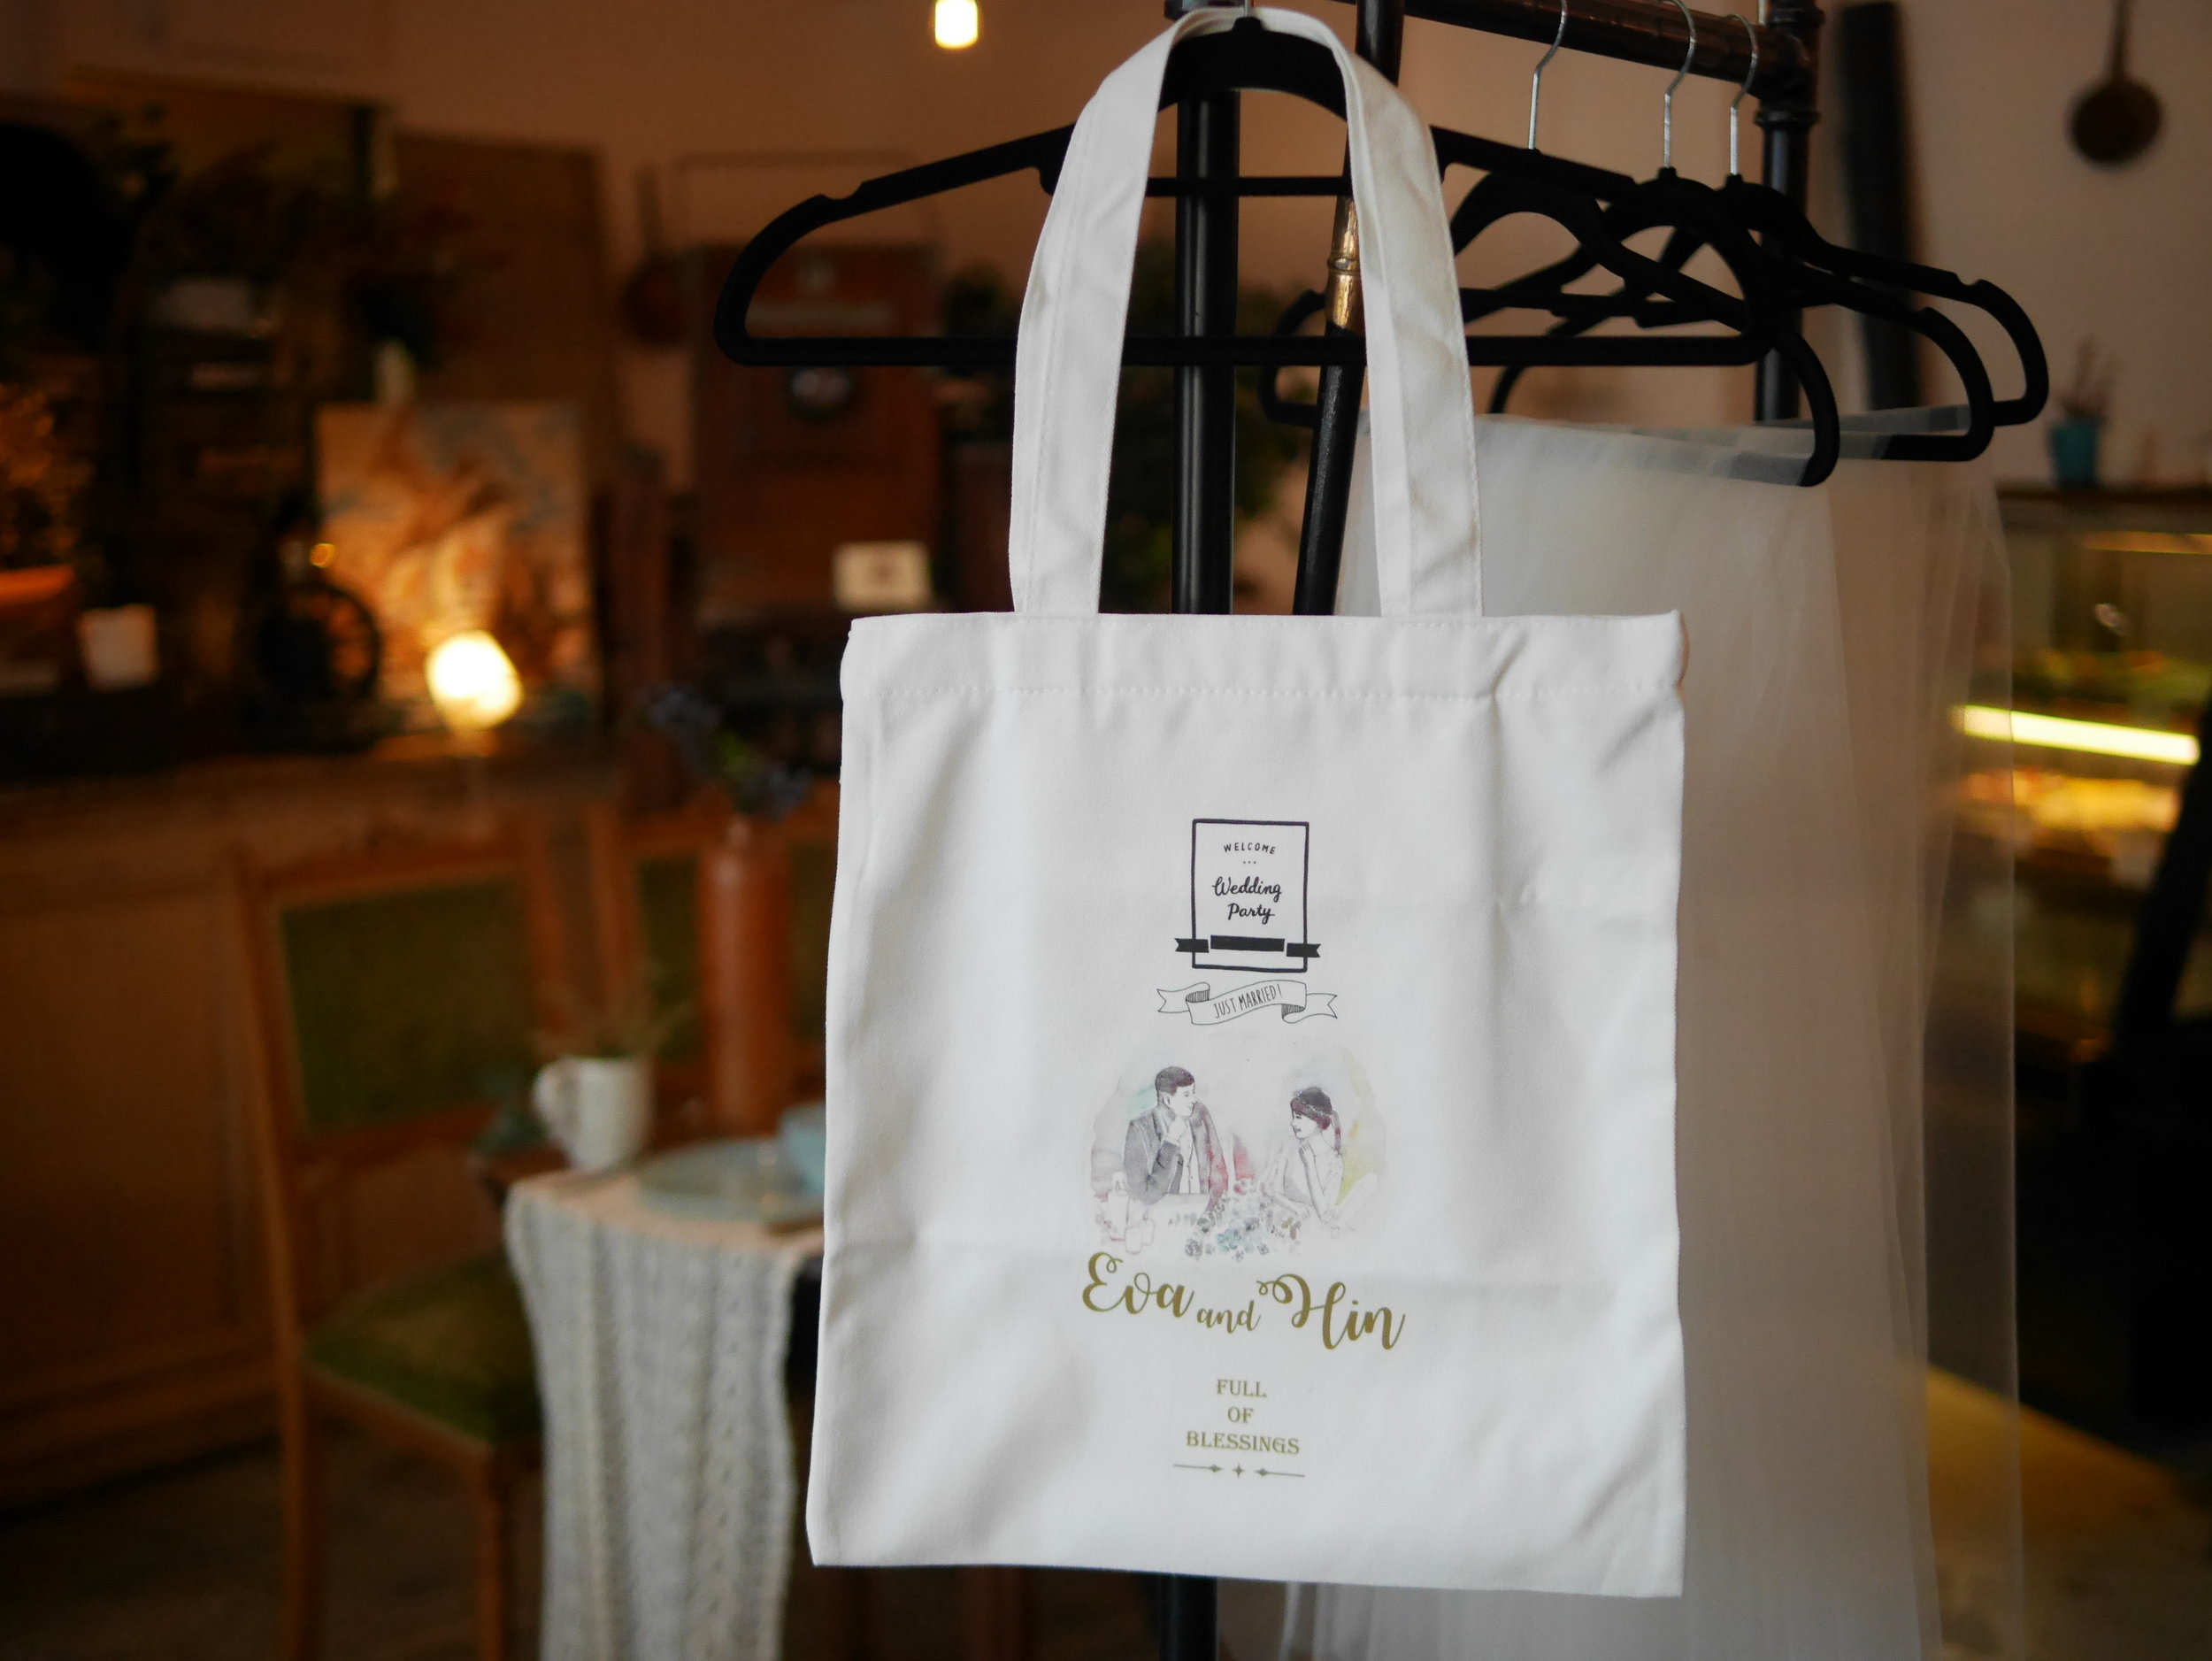 wedding bags - thank you gift to guests